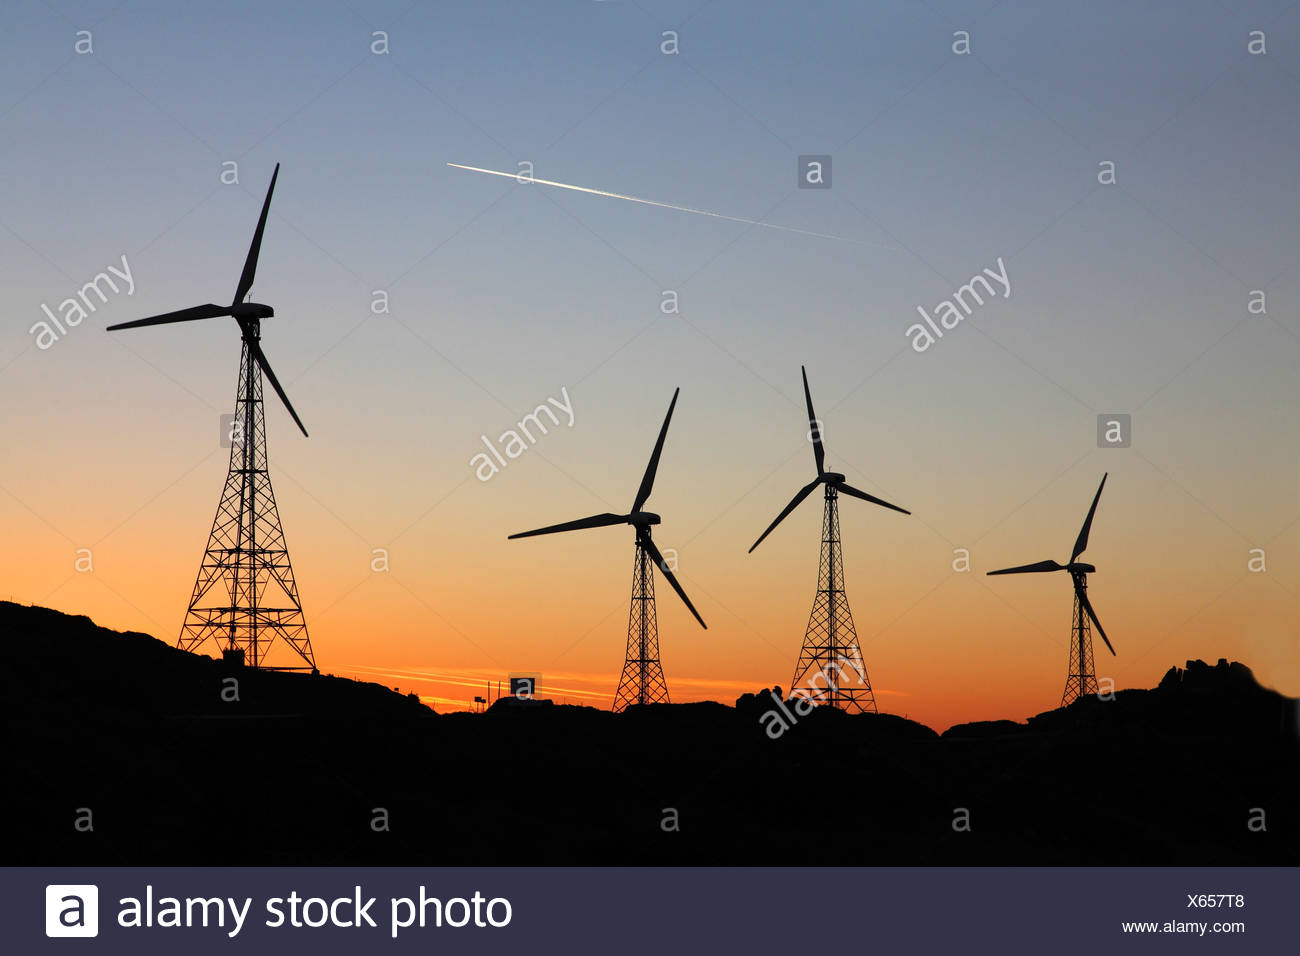 wind engines at sunset, Spain, Andalusia, Tarifa - Stock Image